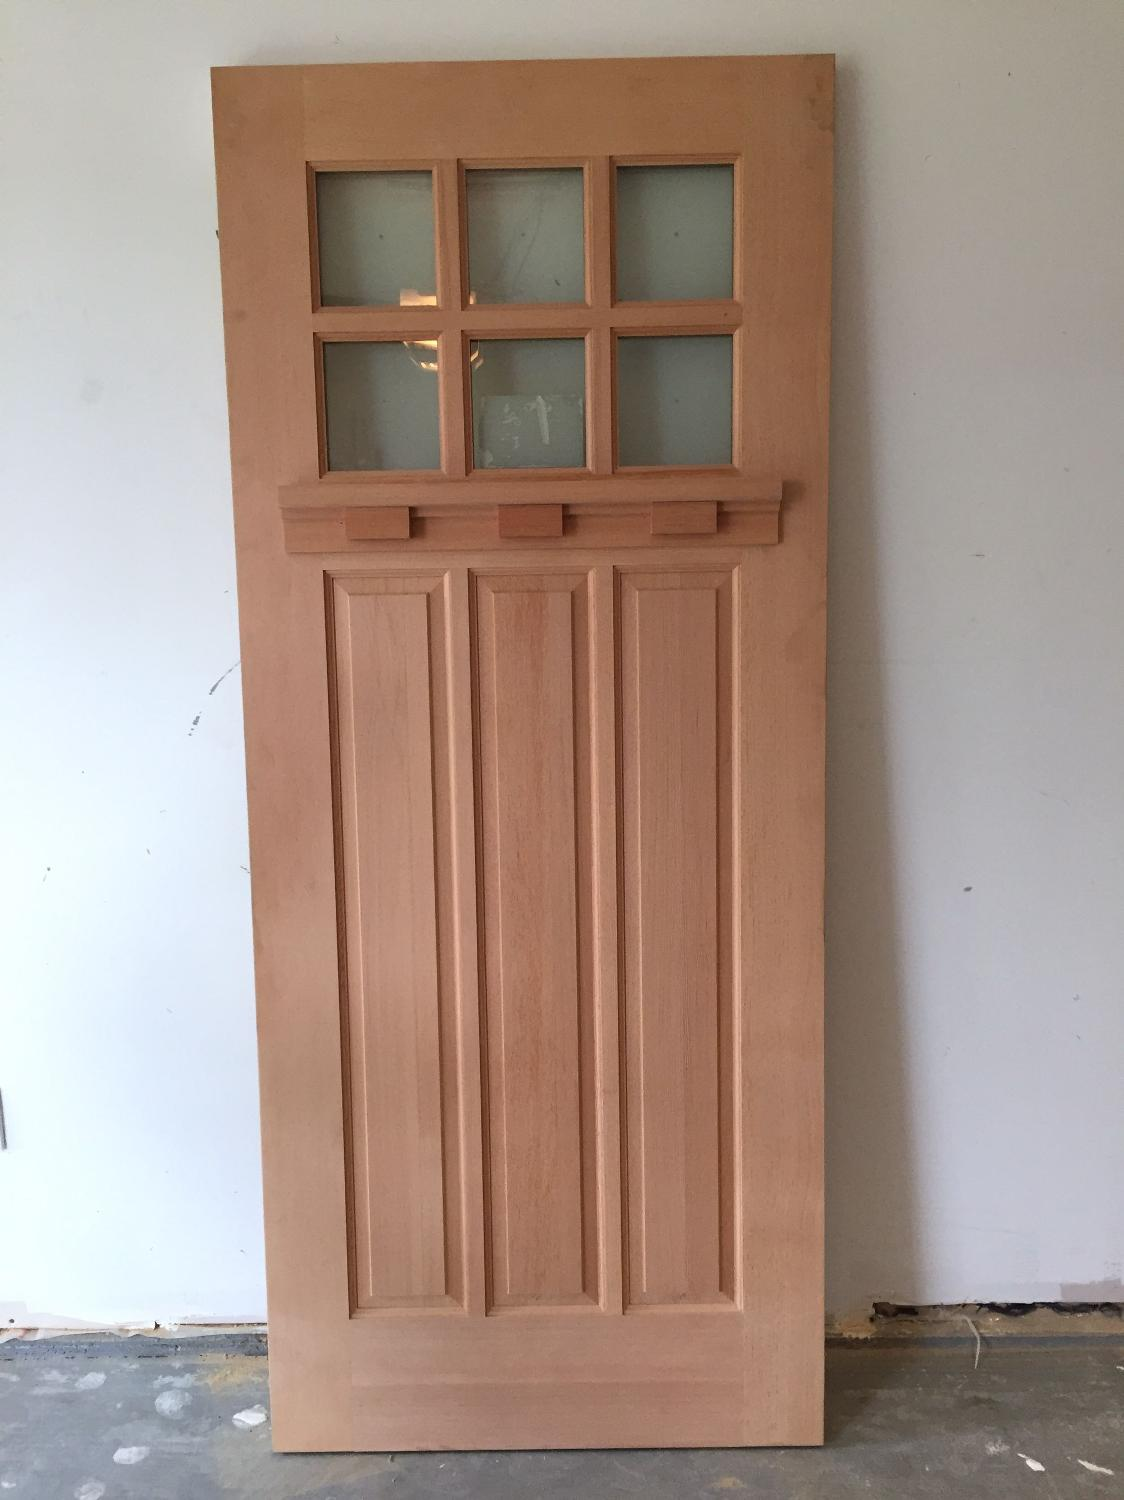 Find more exterior custom fir door unstained brand new for Oversized exterior doors for sale